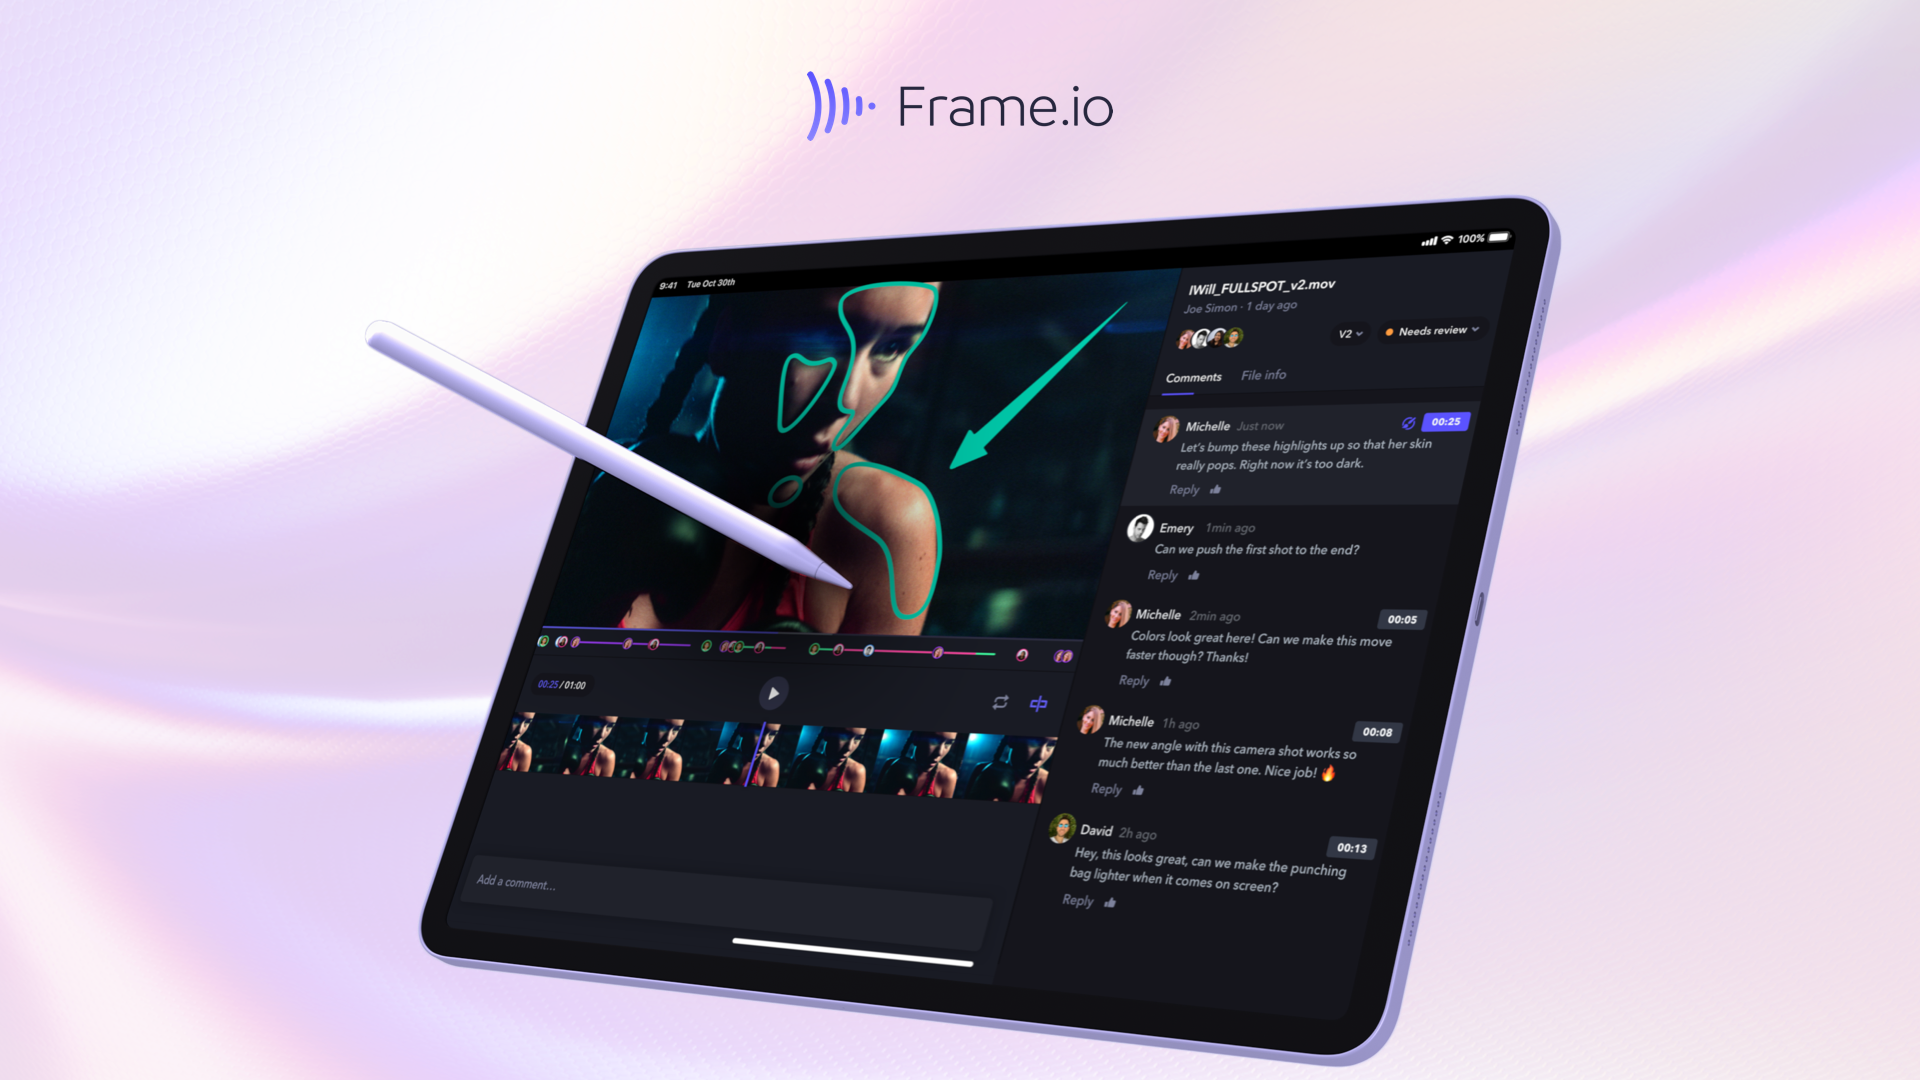 Frame.io for iPad review page